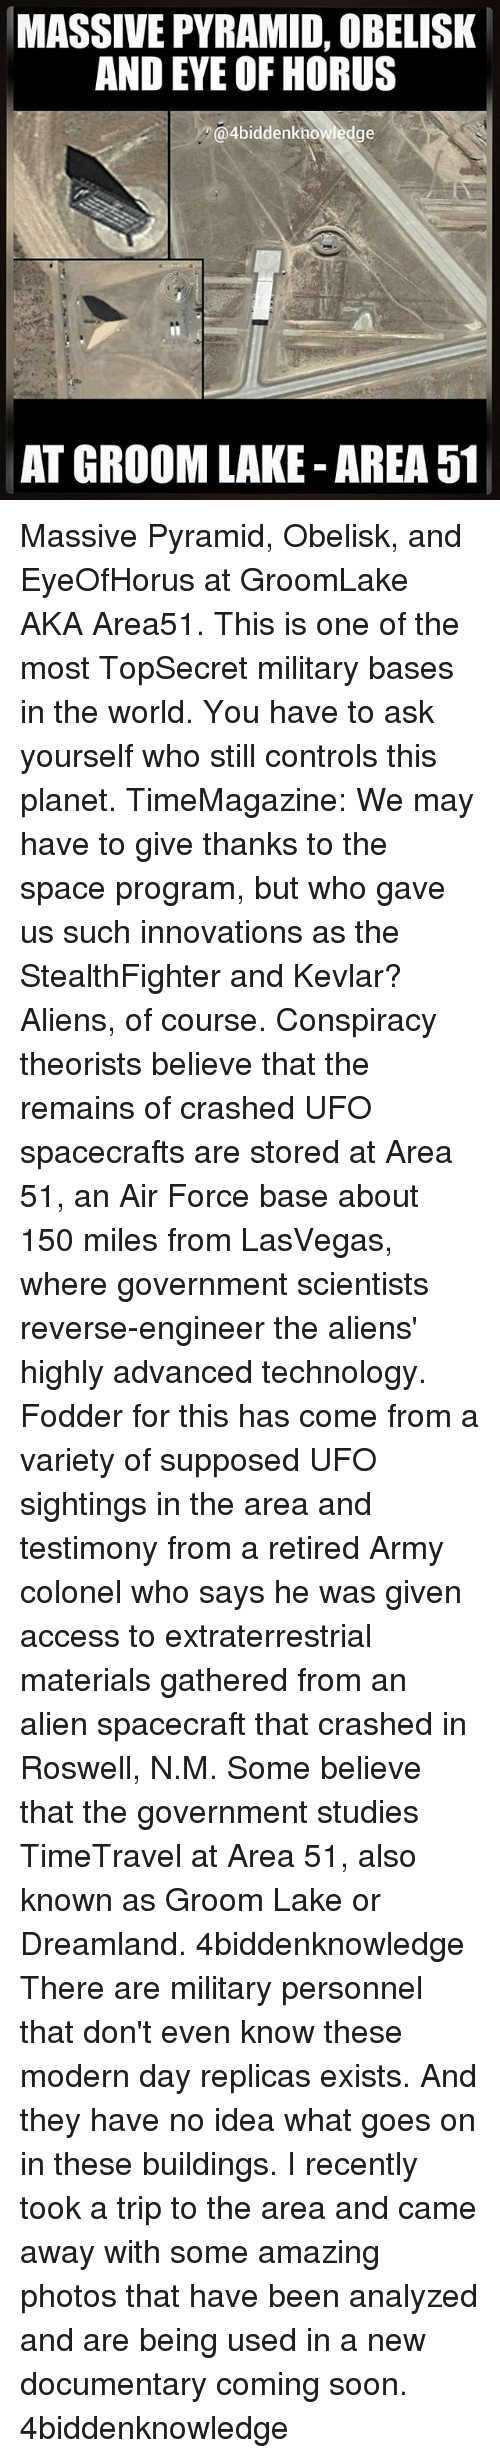 Groomed: MASSIVE PYRAMID, OBELISK  AND EYE OF HORUS  @4biddenknowledge  AT GROOM LAKE AREA 51 Massive Pyramid, Obelisk, and EyeOfHorus at GroomLake AKA Area51. This is one of the most TopSecret military bases in the world. You have to ask yourself who still controls this planet. TimeMagazine: We may have to give thanks to the space program, but who gave us such innovations as the StealthFighter and Kevlar? Aliens, of course. Conspiracy theorists believe that the remains of crashed UFO spacecrafts are stored at Area 51, an Air Force base about 150 miles from LasVegas, where government scientists reverse-engineer the aliens' highly advanced technology. Fodder for this has come from a variety of supposed UFO sightings in the area and testimony from a retired Army colonel who says he was given access to extraterrestrial materials gathered from an alien spacecraft that crashed in Roswell, N.M. Some believe that the government studies TimeTravel at Area 51, also known as Groom Lake or Dreamland. 4biddenknowledge There are military personnel that don't even know these modern day replicas exists. And they have no idea what goes on in these buildings. I recently took a trip to the area and came away with some amazing photos that have been analyzed and are being used in a new documentary coming soon. 4biddenknowledge